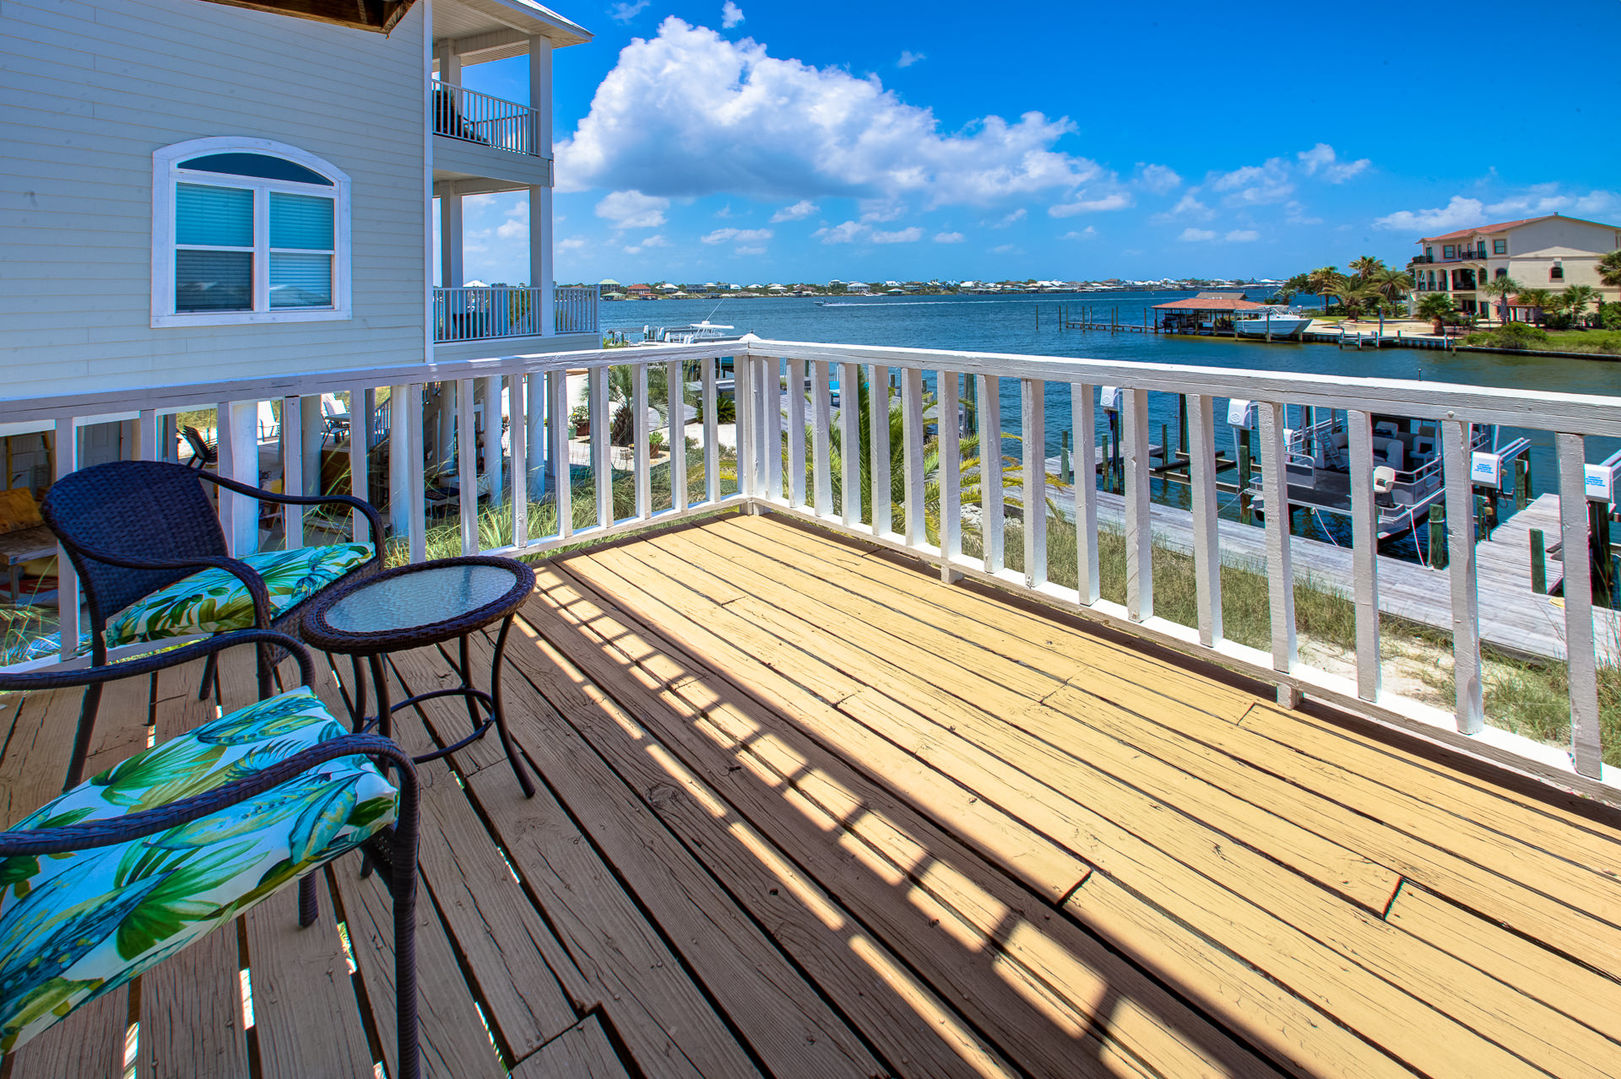 Relax on the Deck Attached to Vacation Rental in Pensacola Florida.